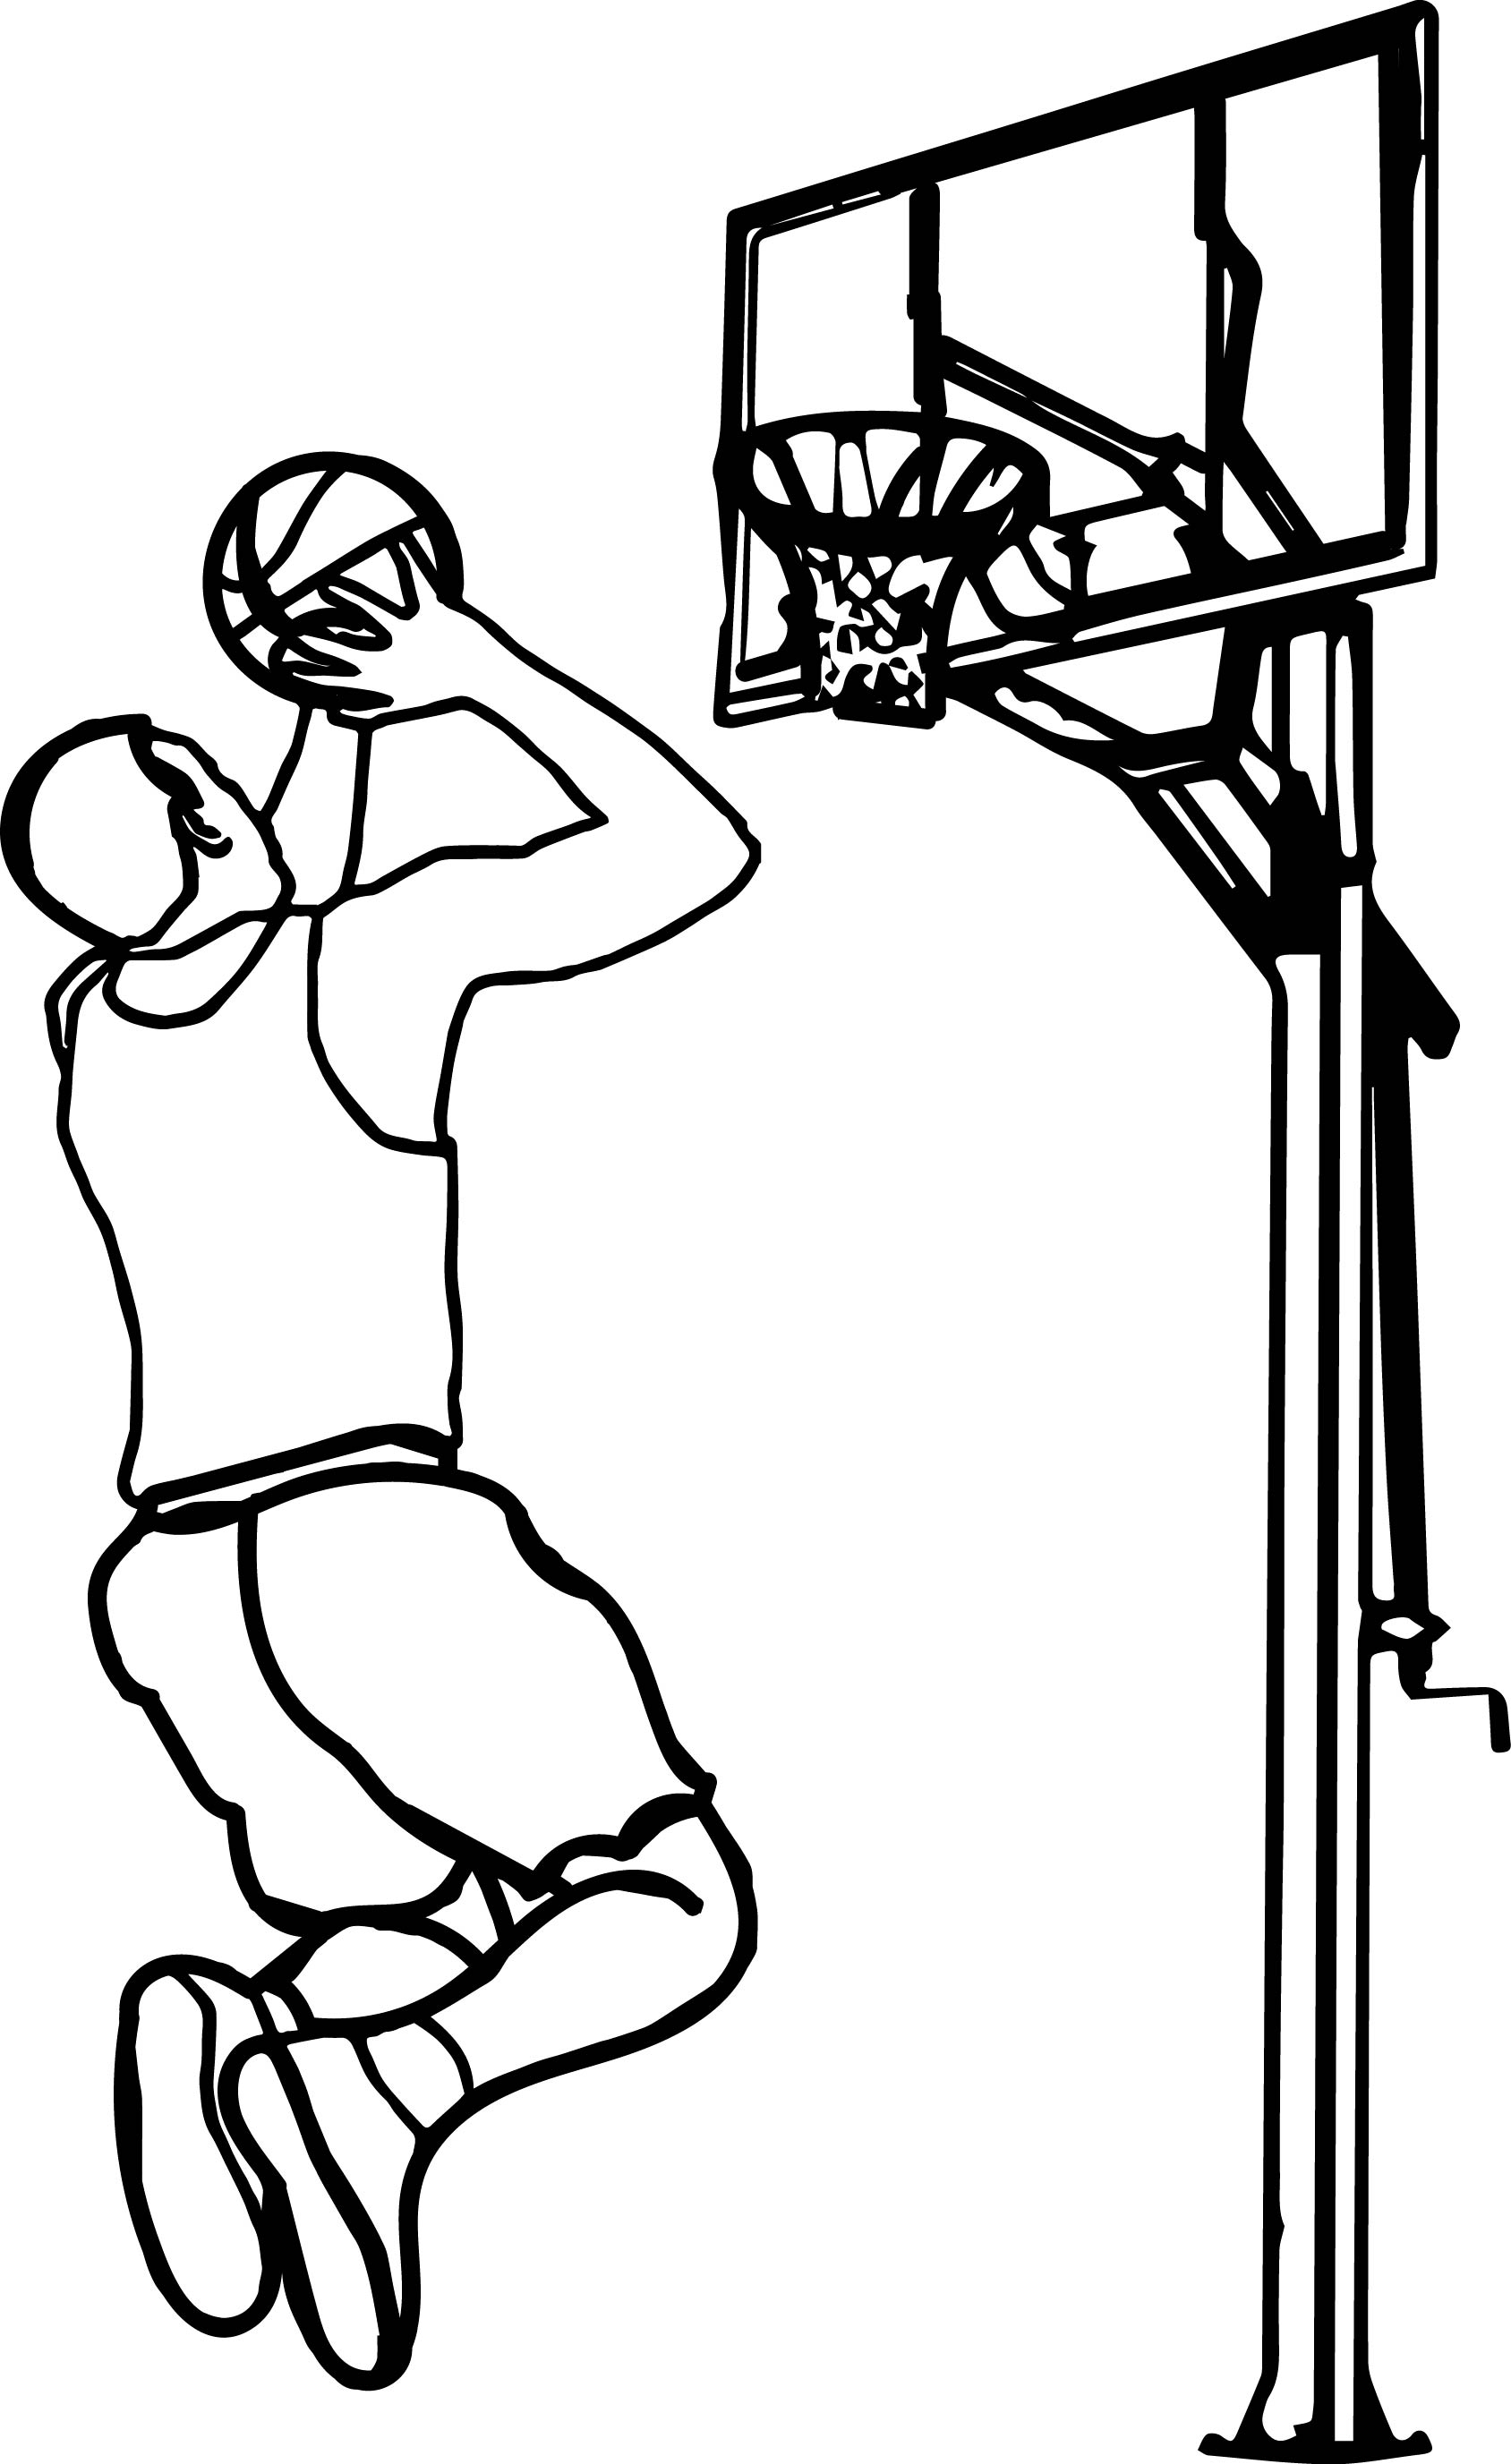 11 Basketball Clipart Black And White